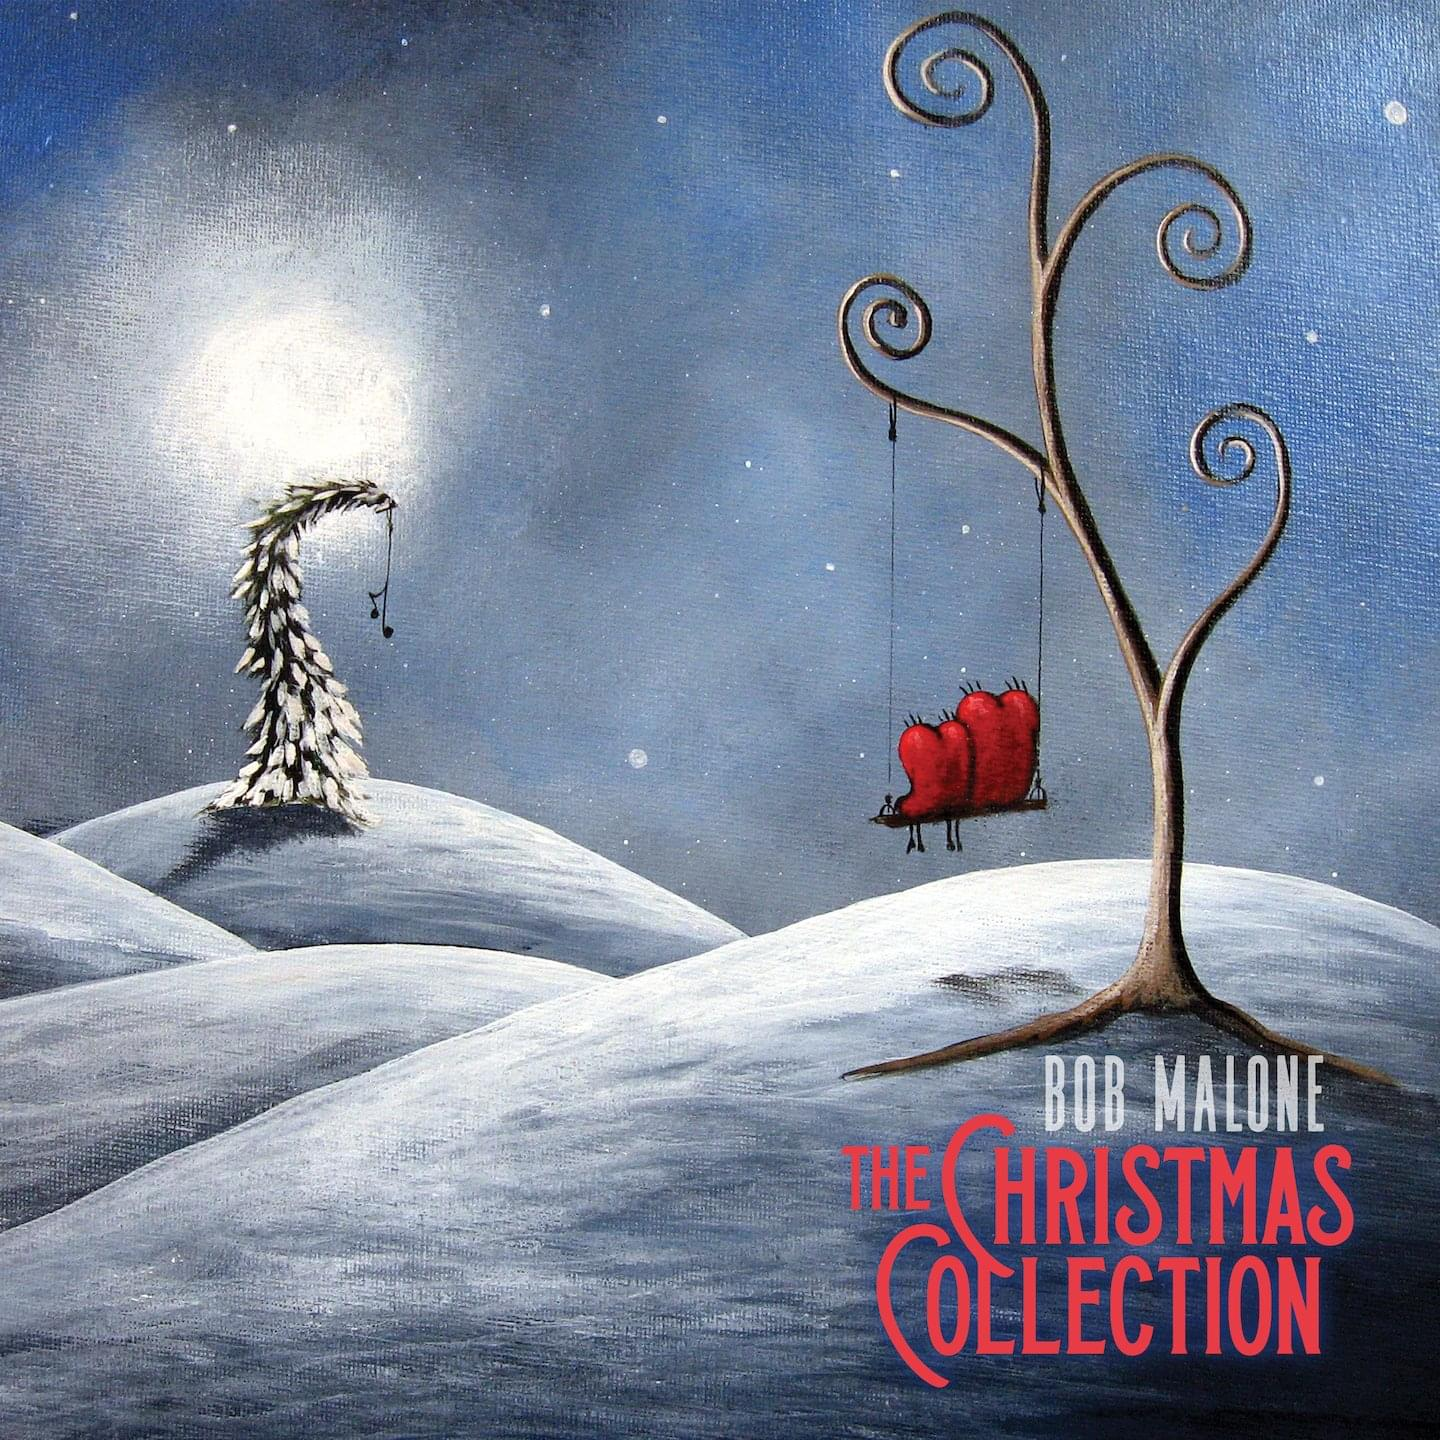 ALBUM OF THE WEEK: Bob Malone – The Christmas Collection